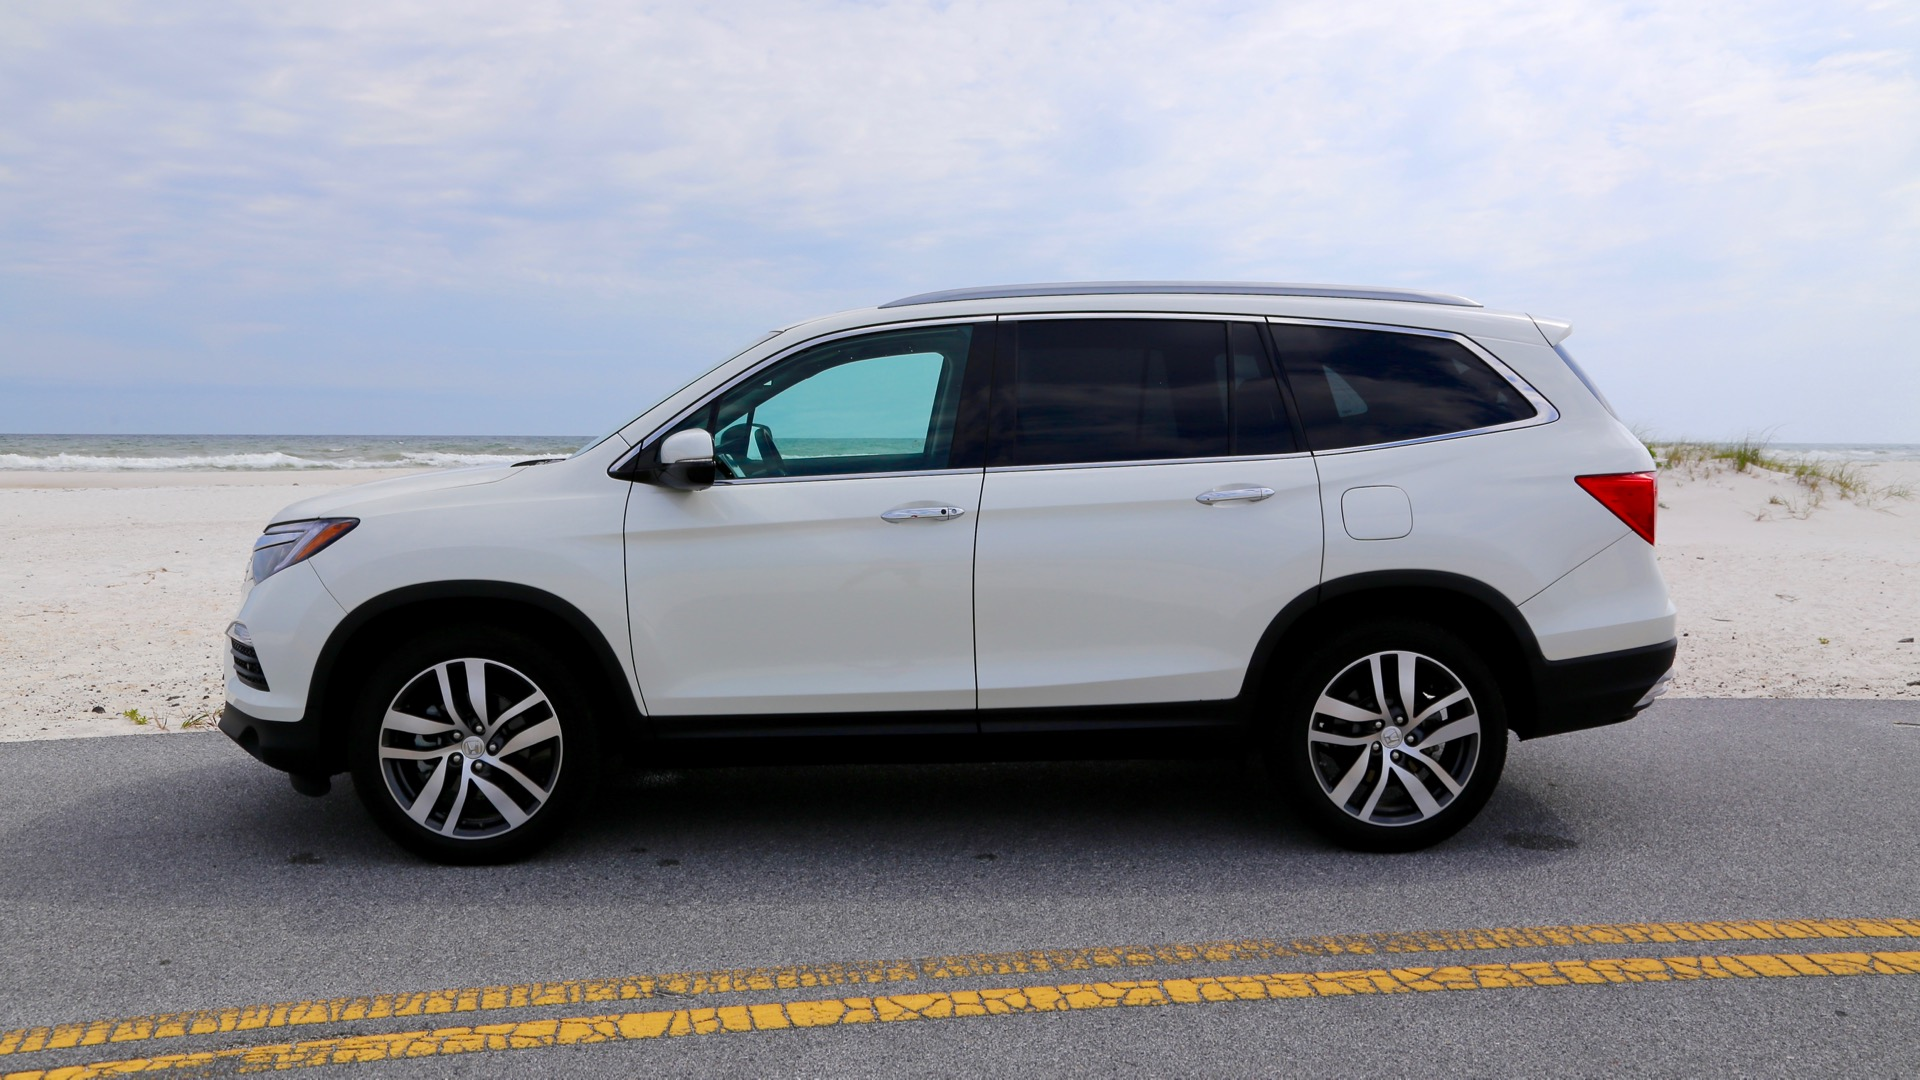 2016 Honda Pilot long-term road test which accessories are worth the price? & 2016 Honda Pilot long-term road test: which accessories are worth ...